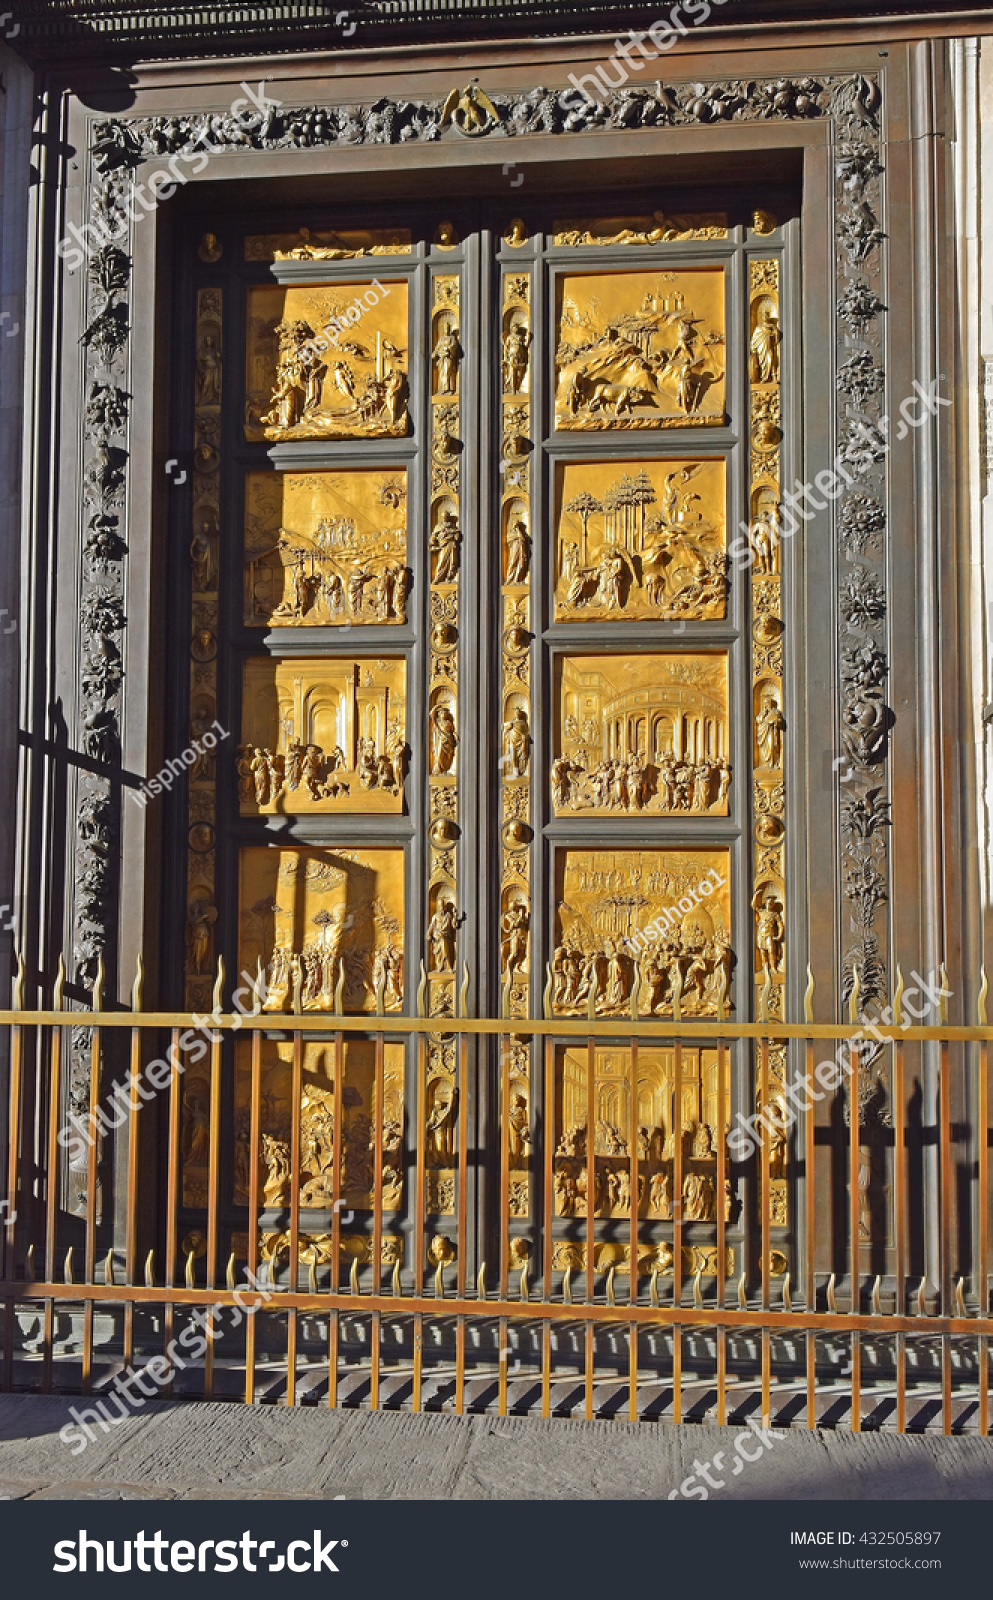 East Doors Gates Paradise By Lorenzo Stock Photo (Royalty Free) 432505897 - Shutterstock & East Doors Gates Paradise By Lorenzo Stock Photo (Royalty Free ...